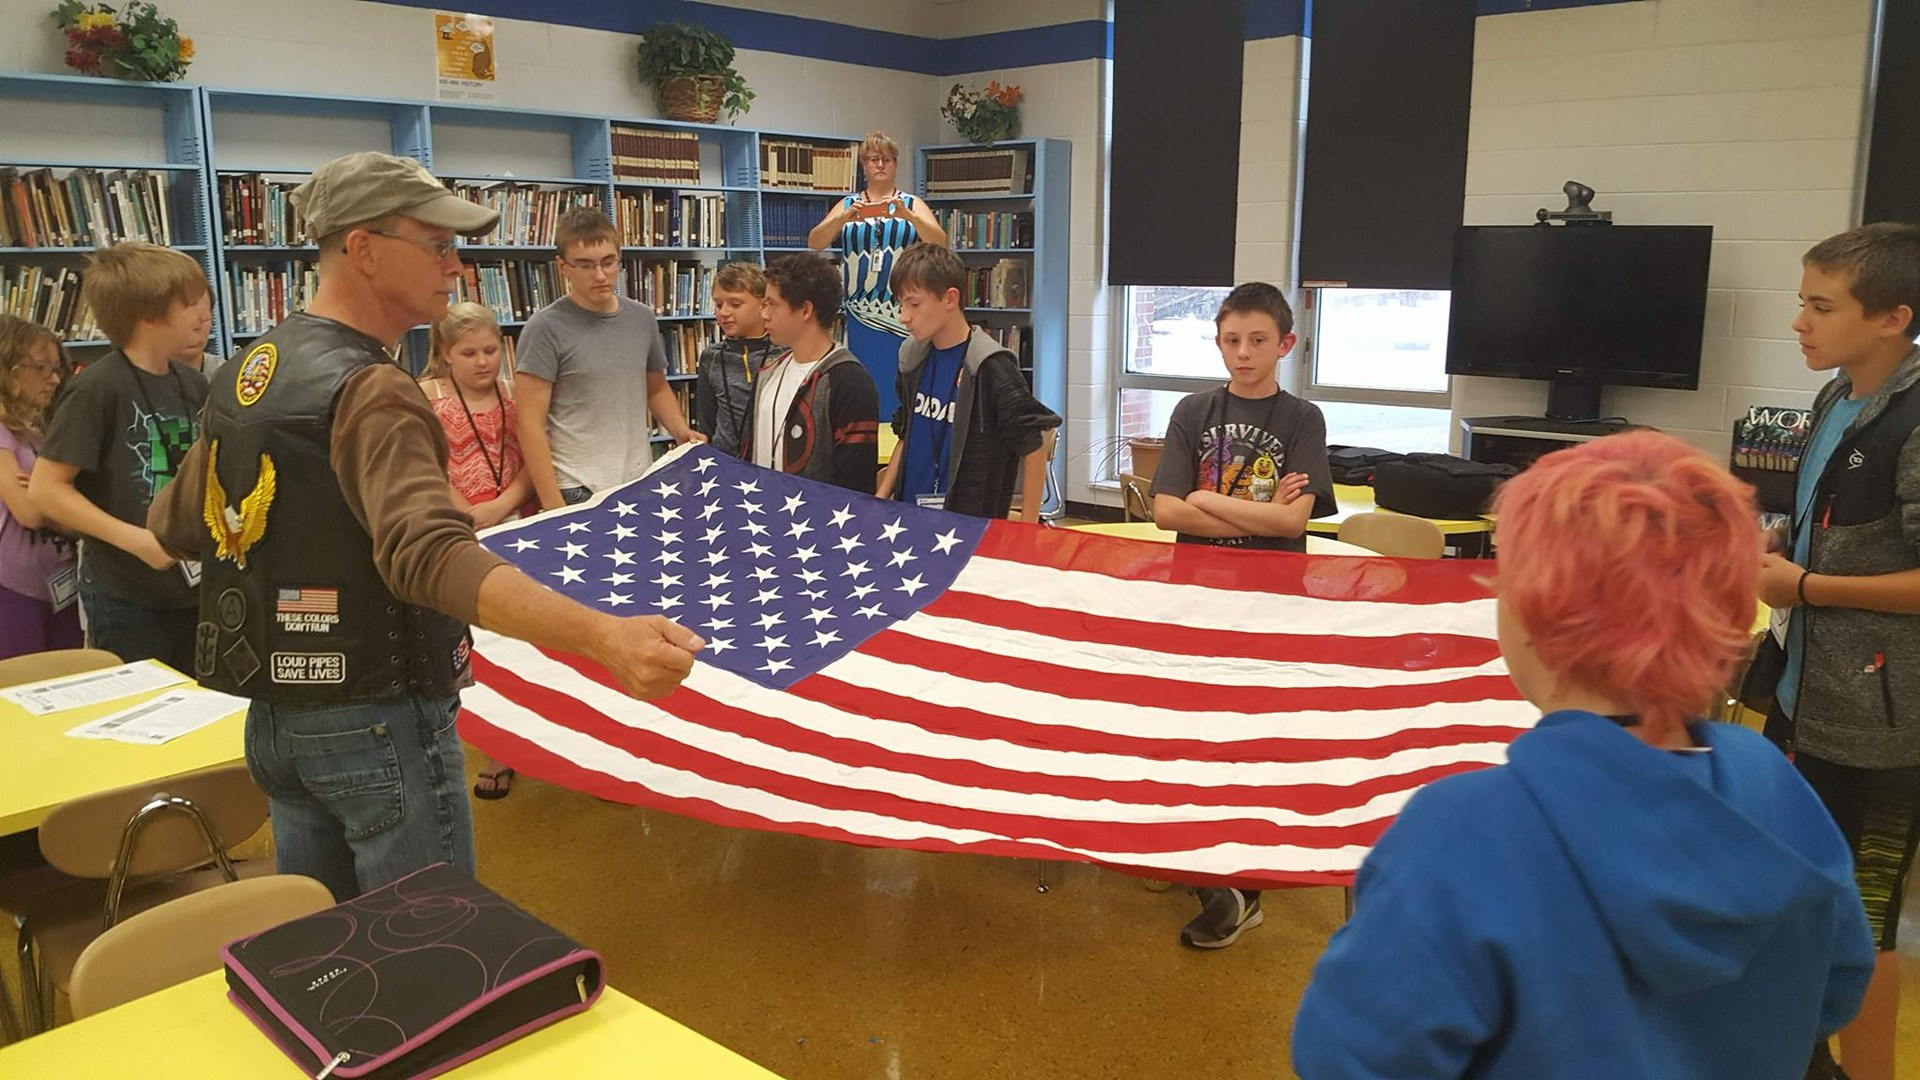 Veterans teaching students how to fold the American flag